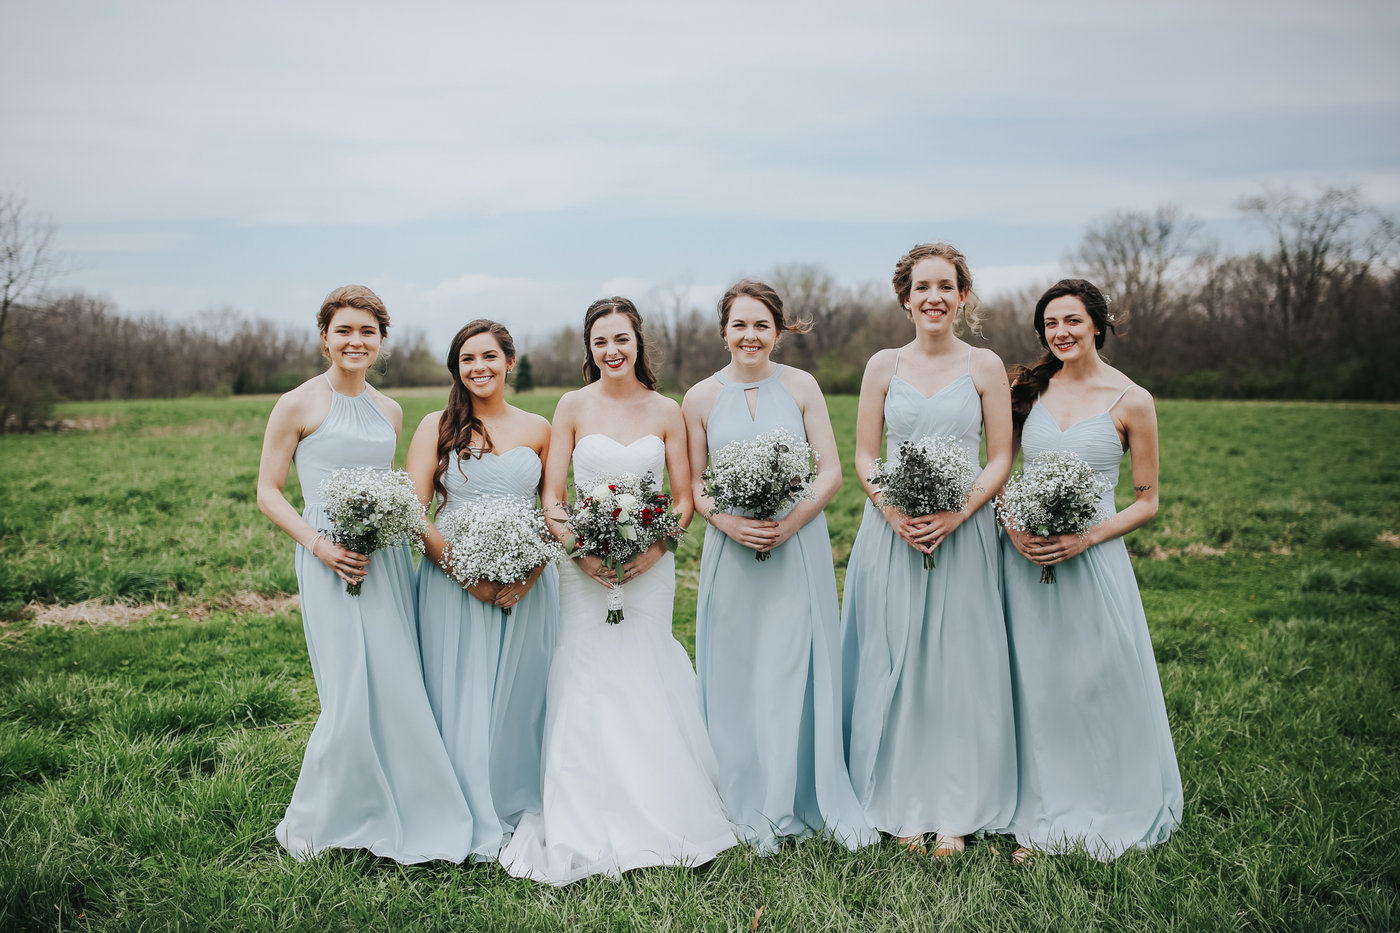 WHY YOU SHOULD CONSIDER AZAZIE FOR BRIDESMAIDS DRESSES